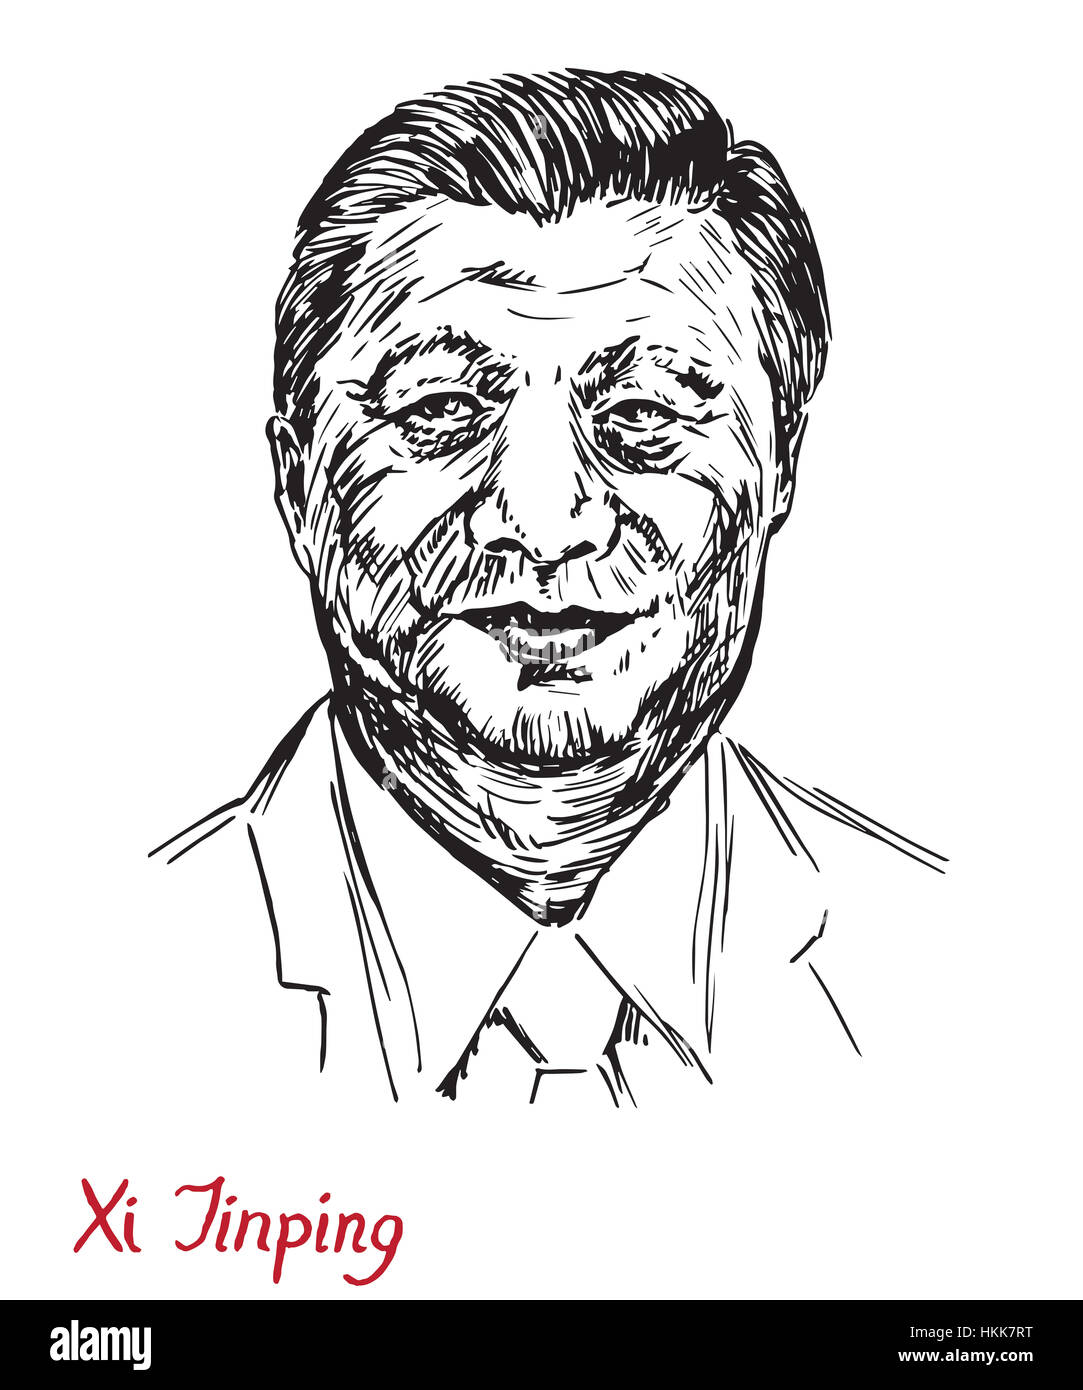 Xi Jinping, General Secretary of the Communist Party of China, President of the People's Republic of China, - Stock Image